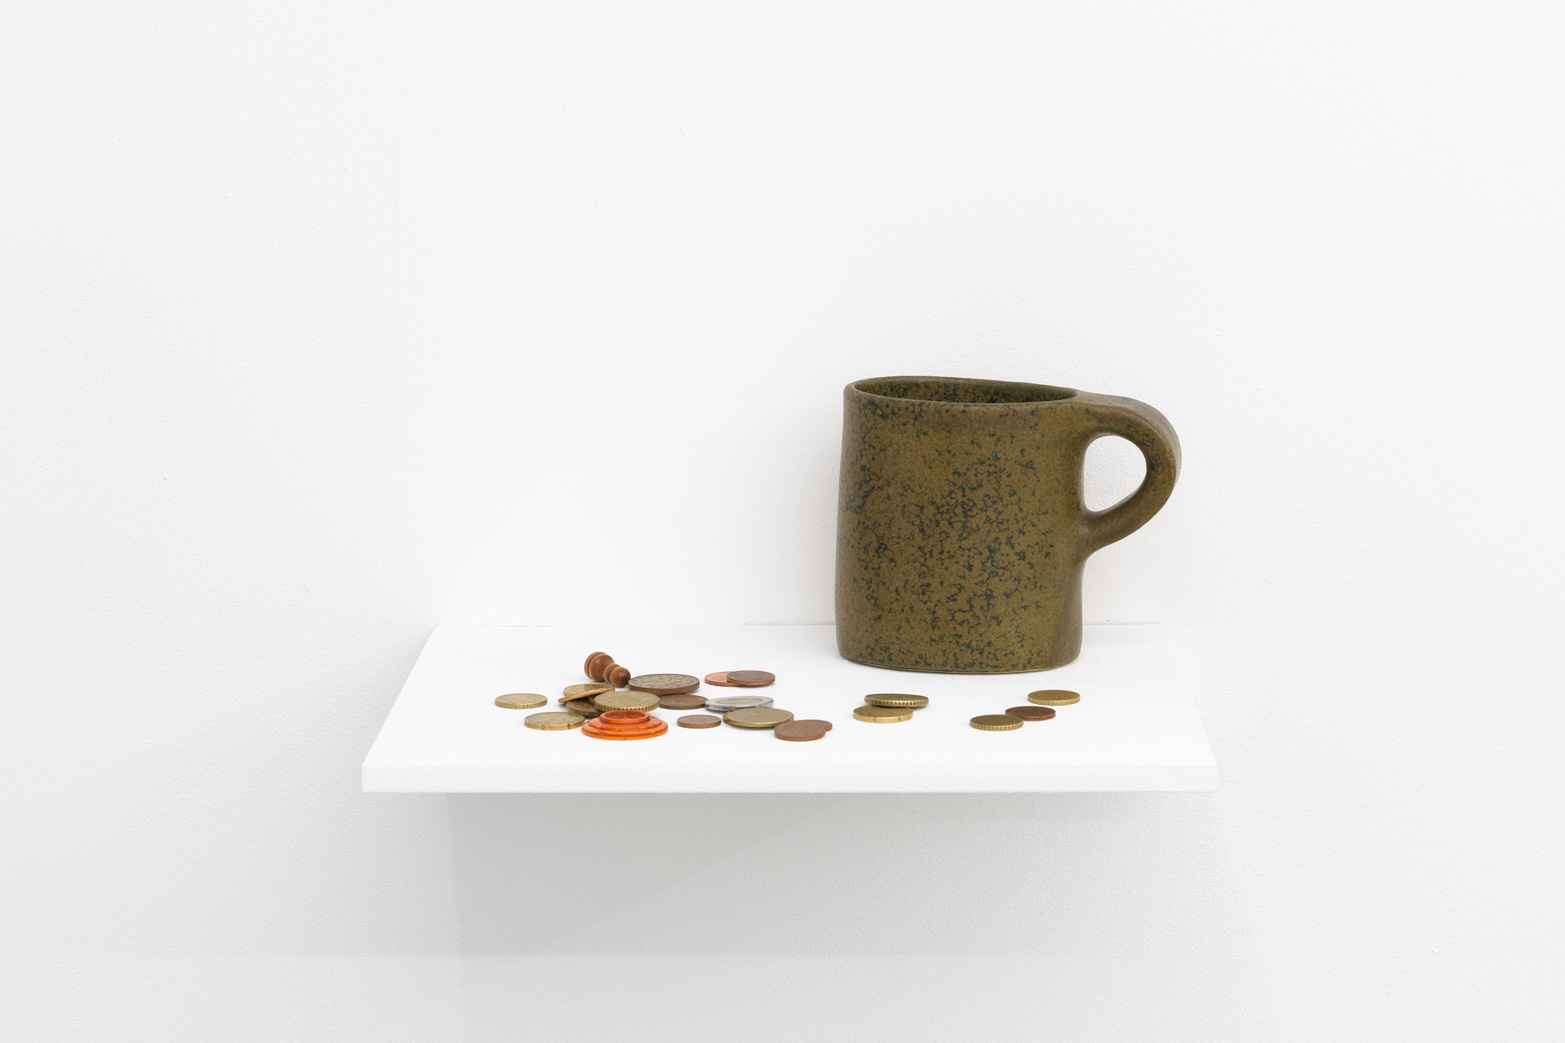 Petra Feriancová, Survivals, Relics, Souvenirs, 2015. Ceramic mug, coins and other objects. Tenderpixel.